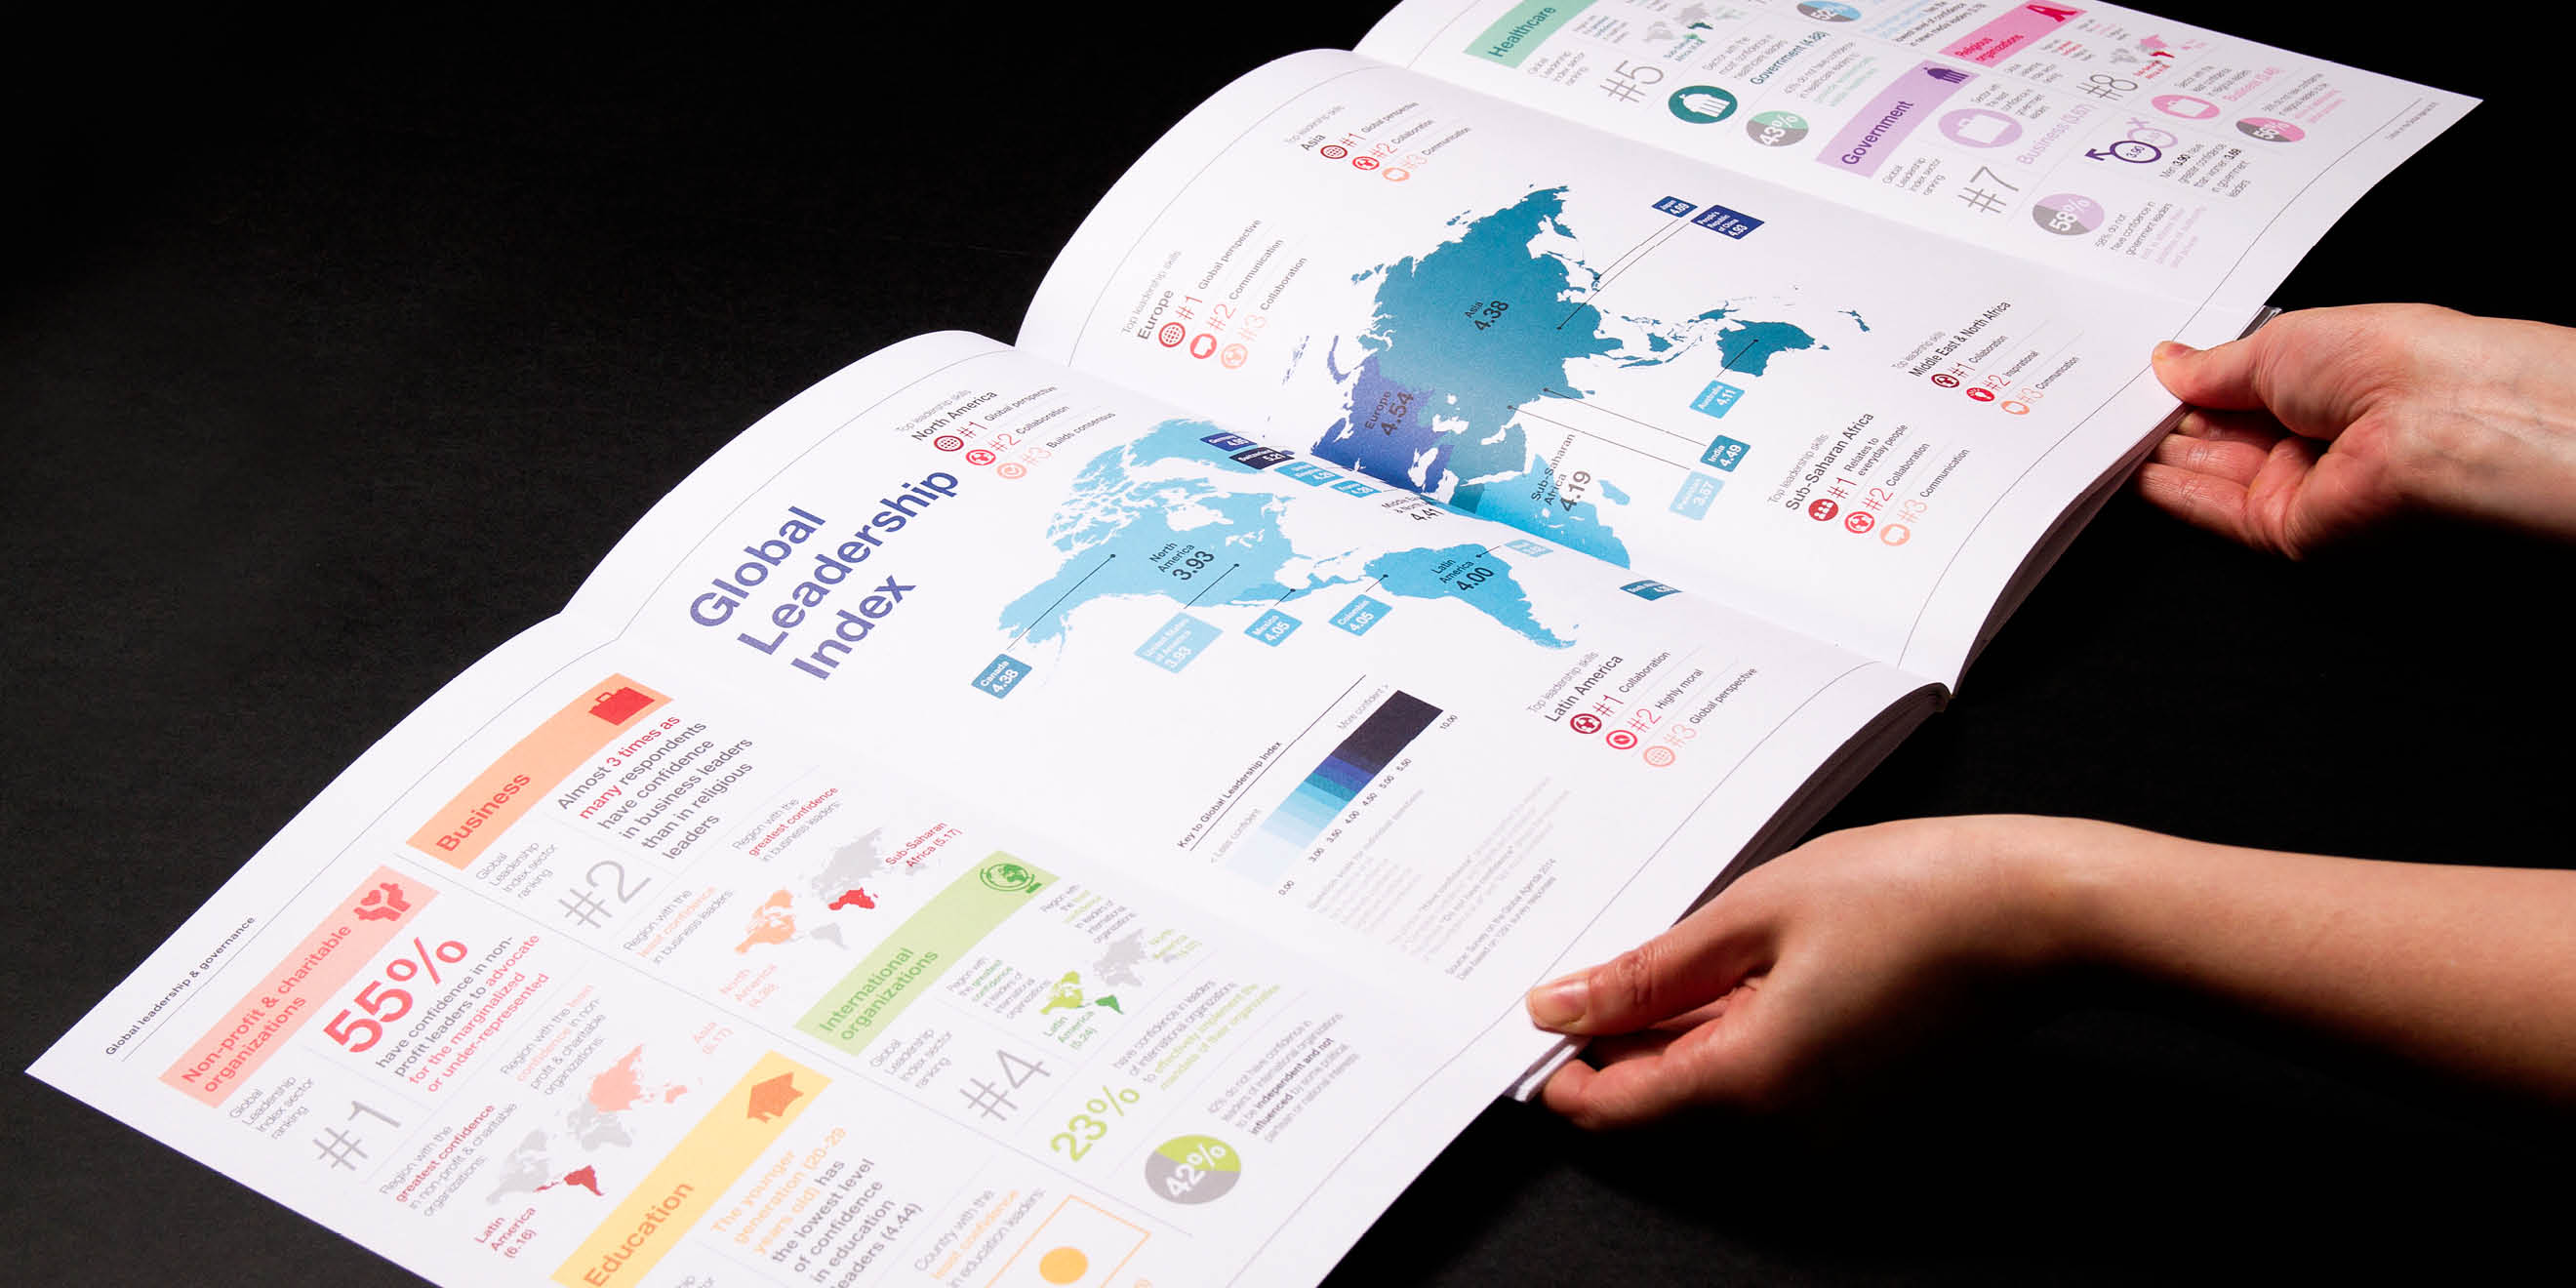 Global Leadership Index design from the World Economic Forum: Outlook on the Global Agenda 2015 report